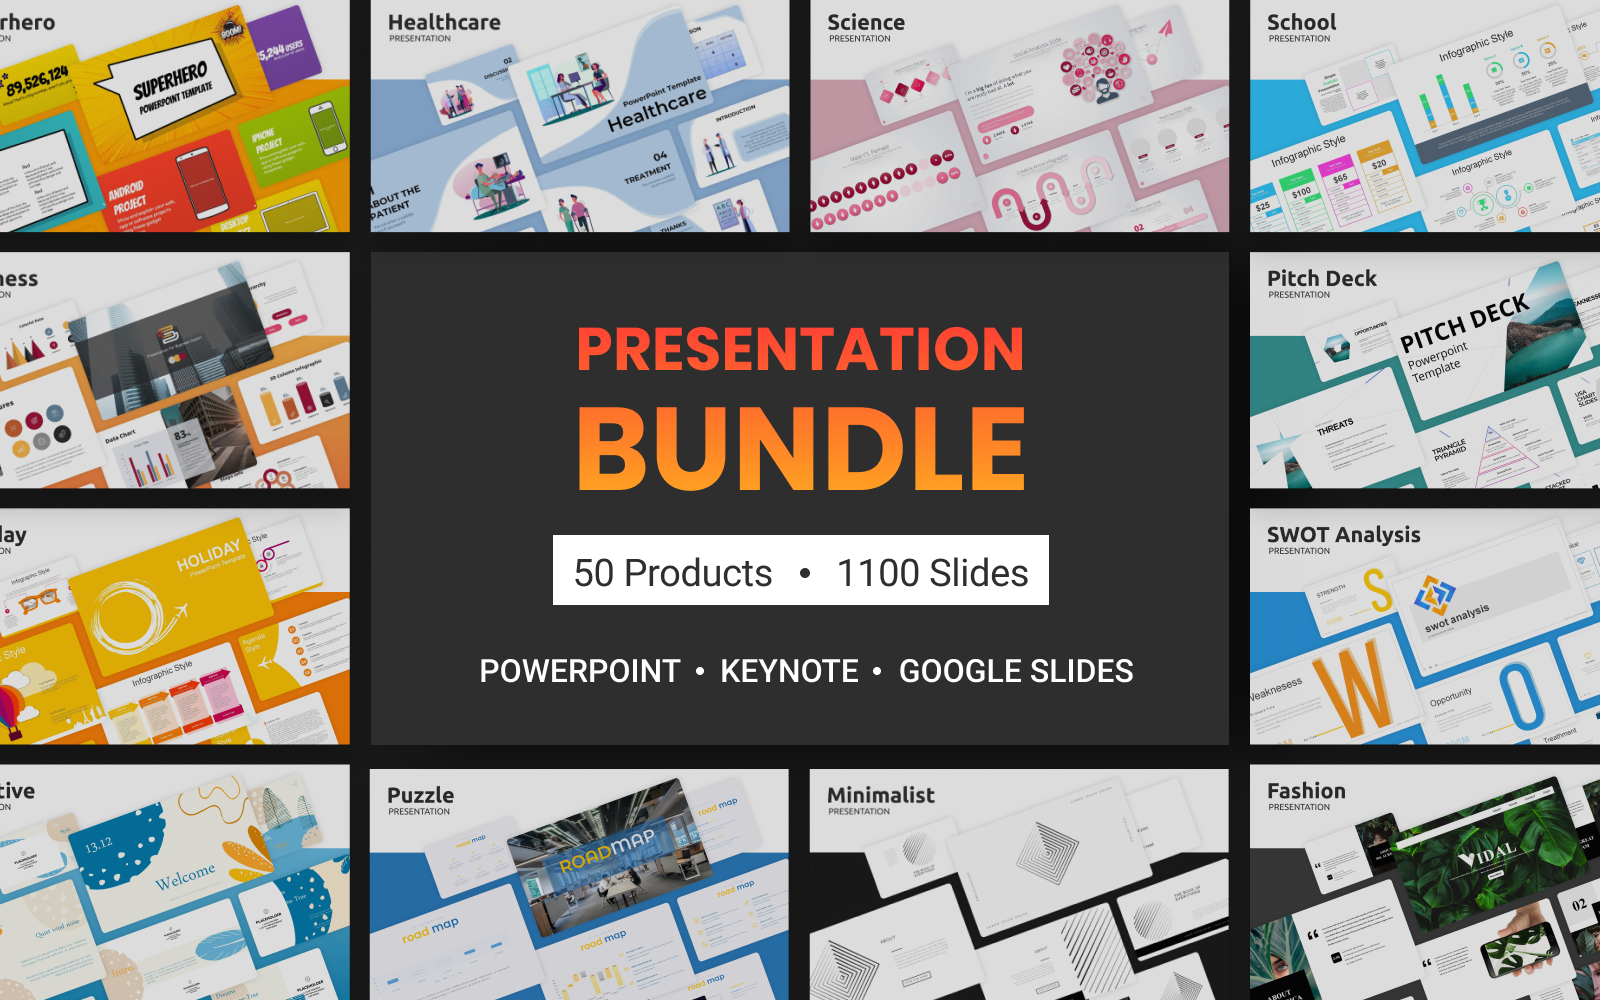 1100 Powerpoint, Keynote, Google Slides: 50 Elegant PowerPointmall #124522